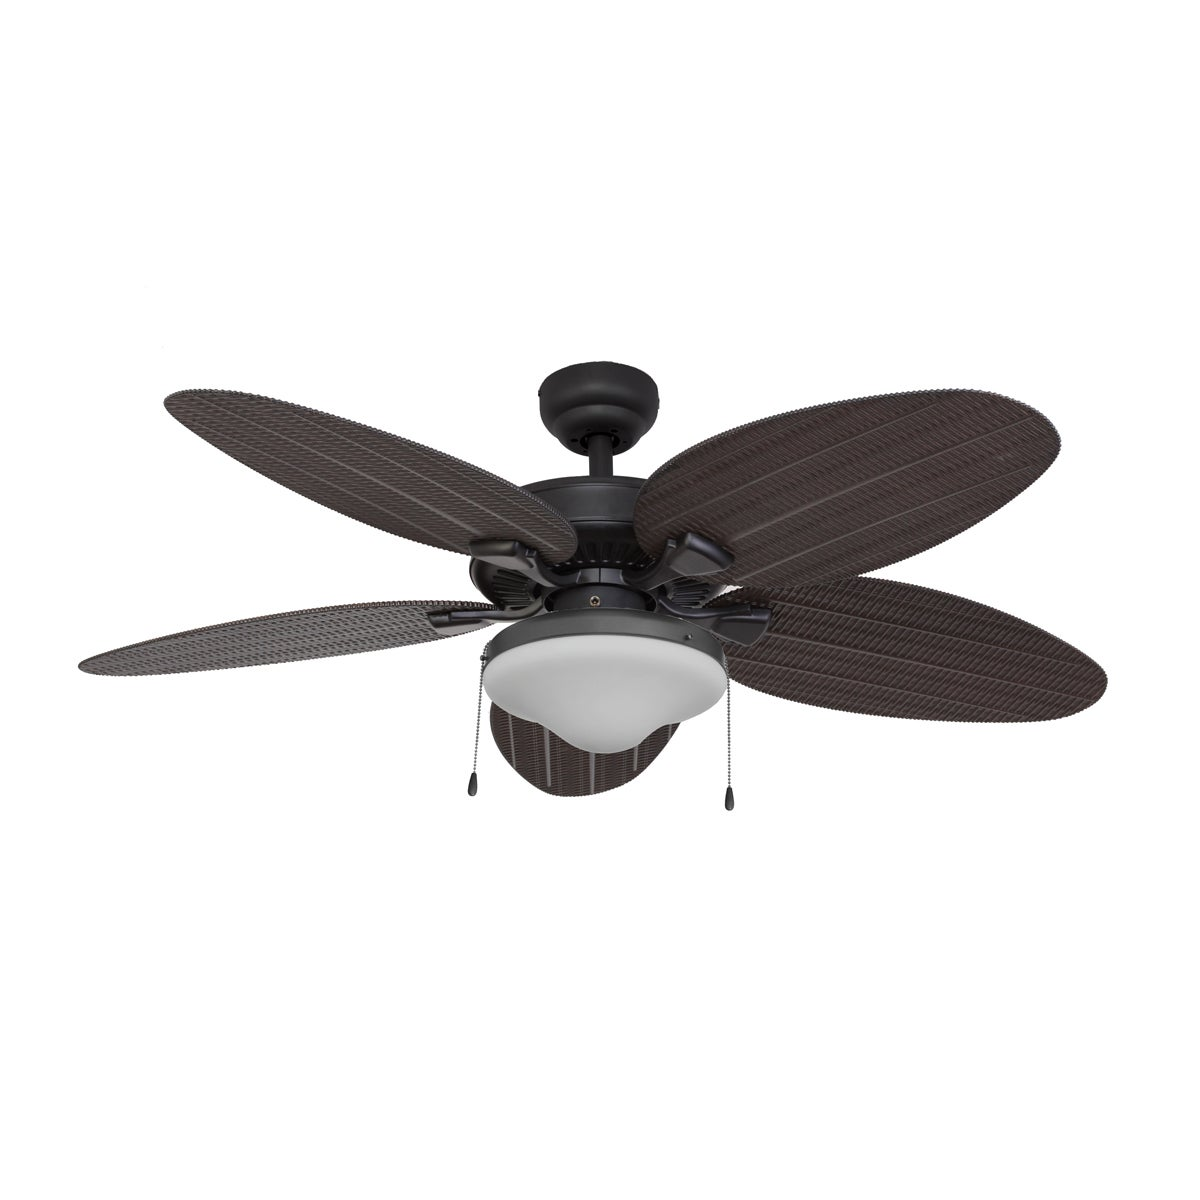 EcoSure Siesta Key Globe Bronze 52-inch Ceiling Fan